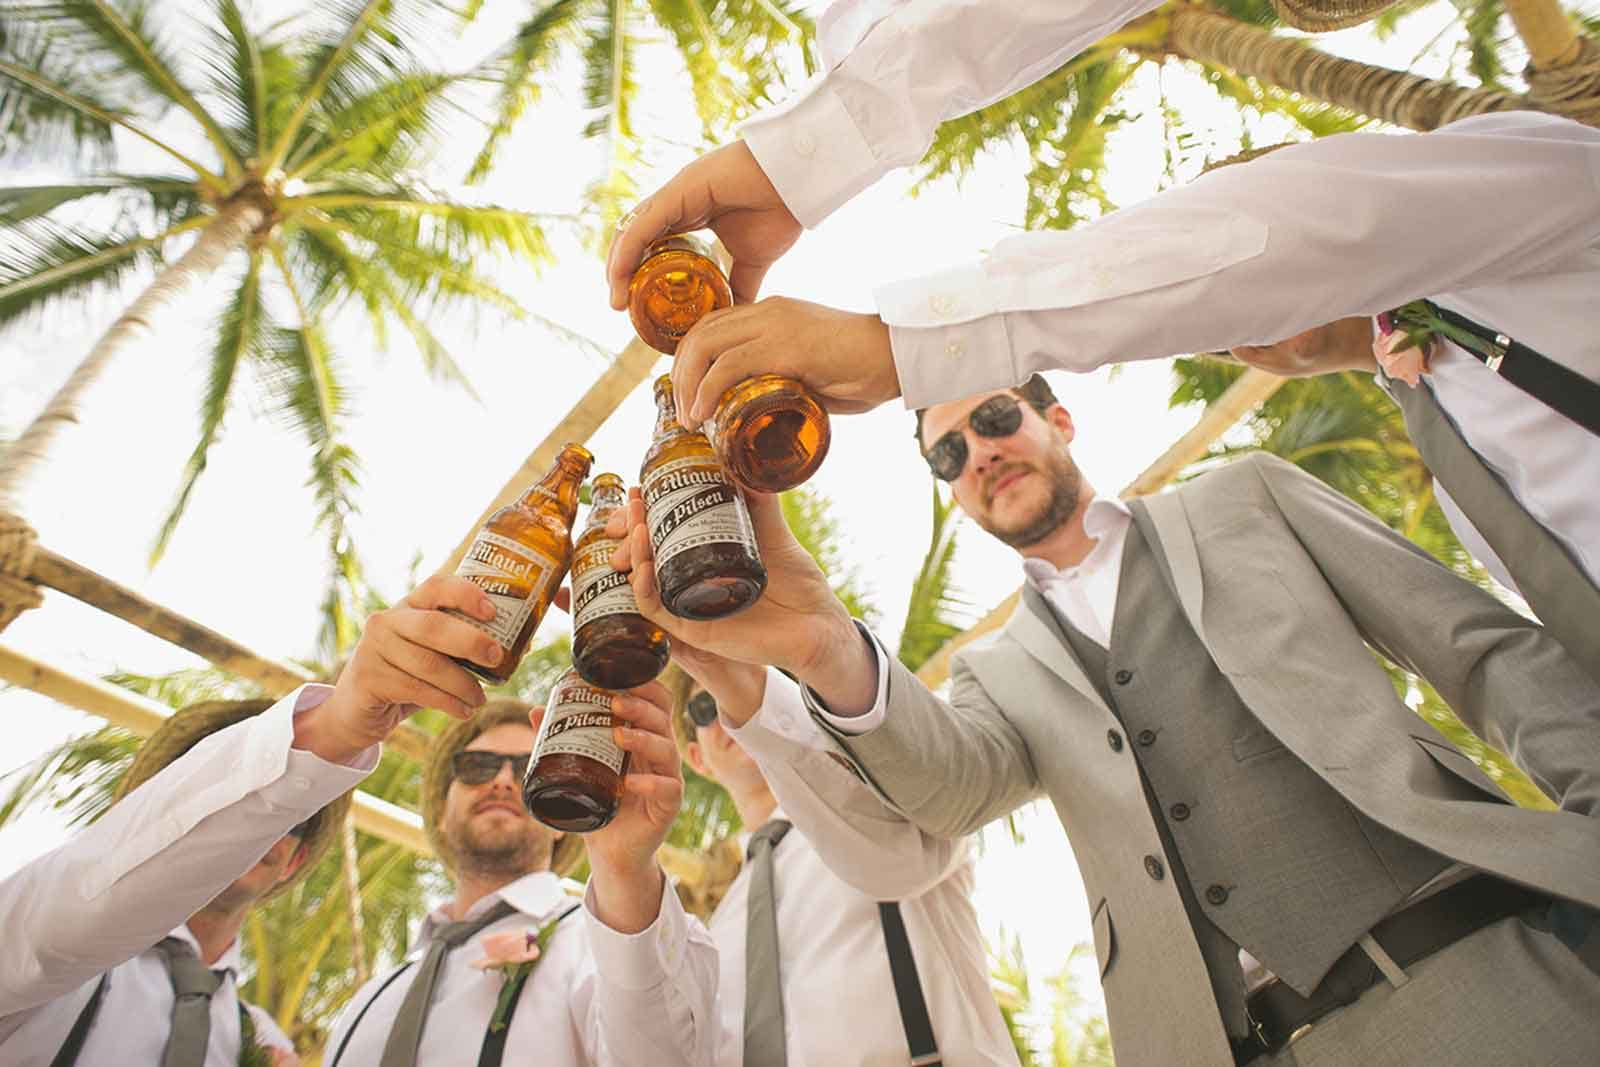 Photo of men in suits toasting beer bottles near palm trees